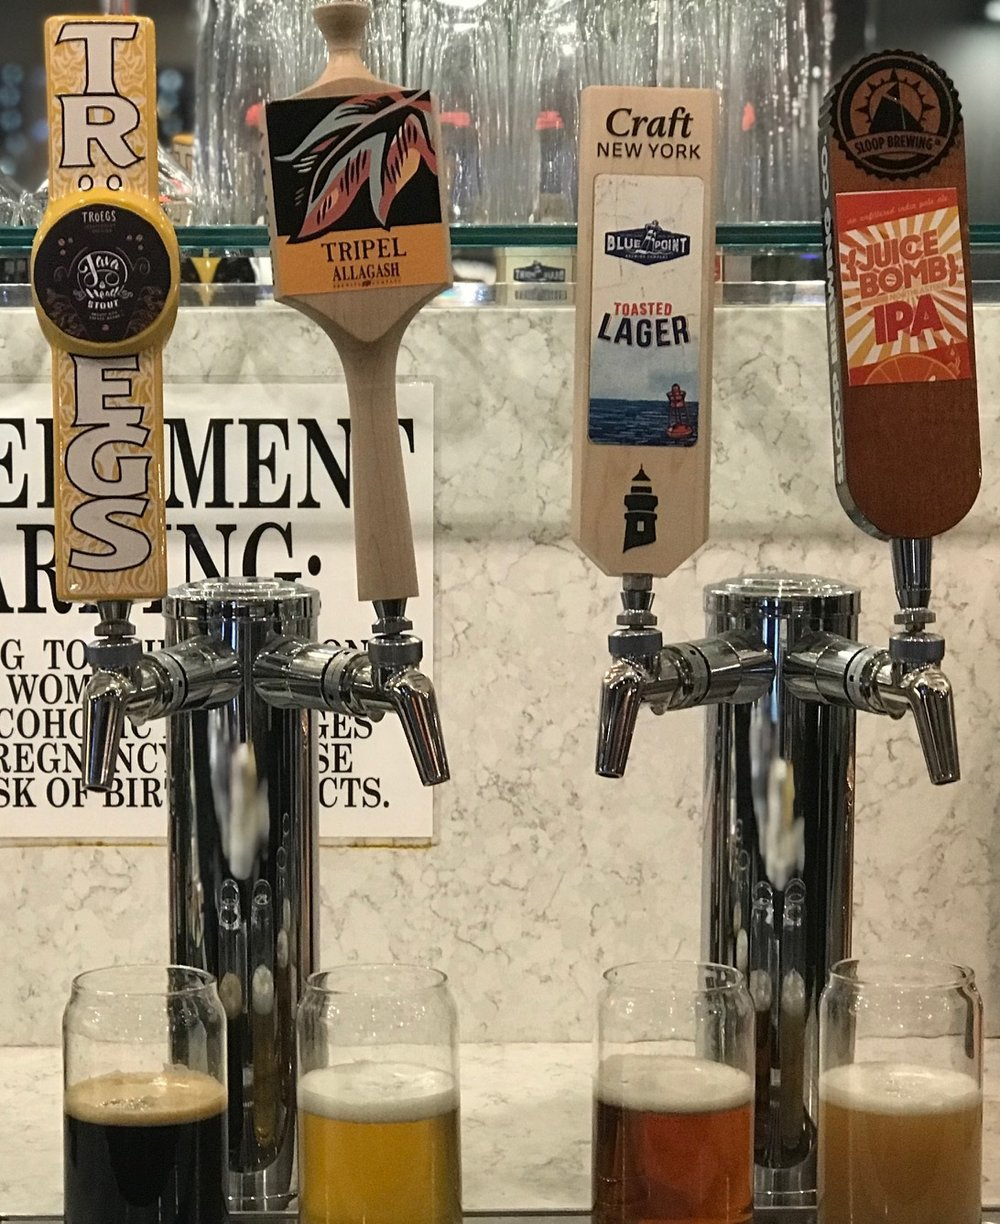 19 Court Artisan Foods Beer on Tap